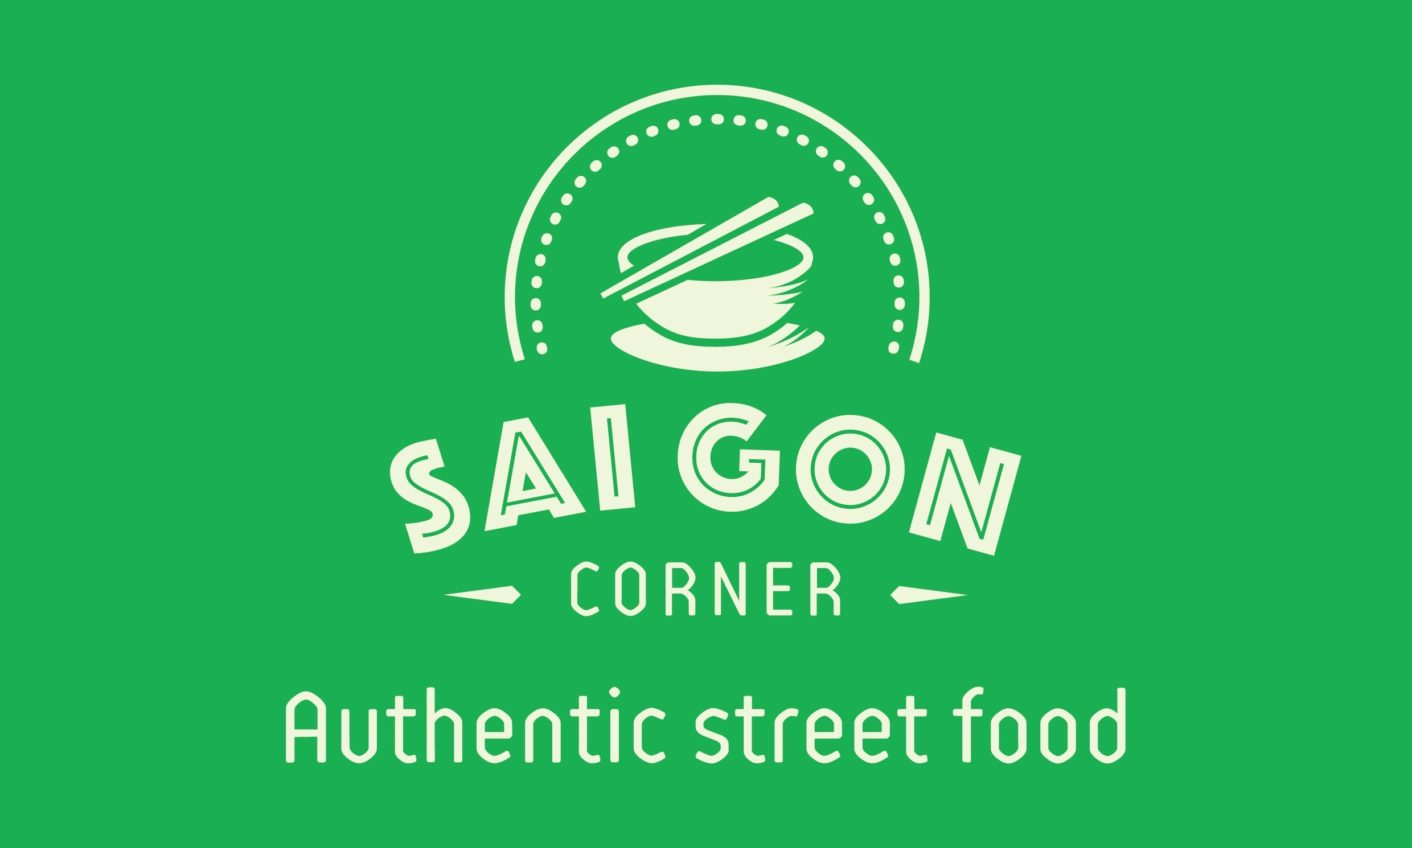 Saigon Corner Logo Slogan Color 02